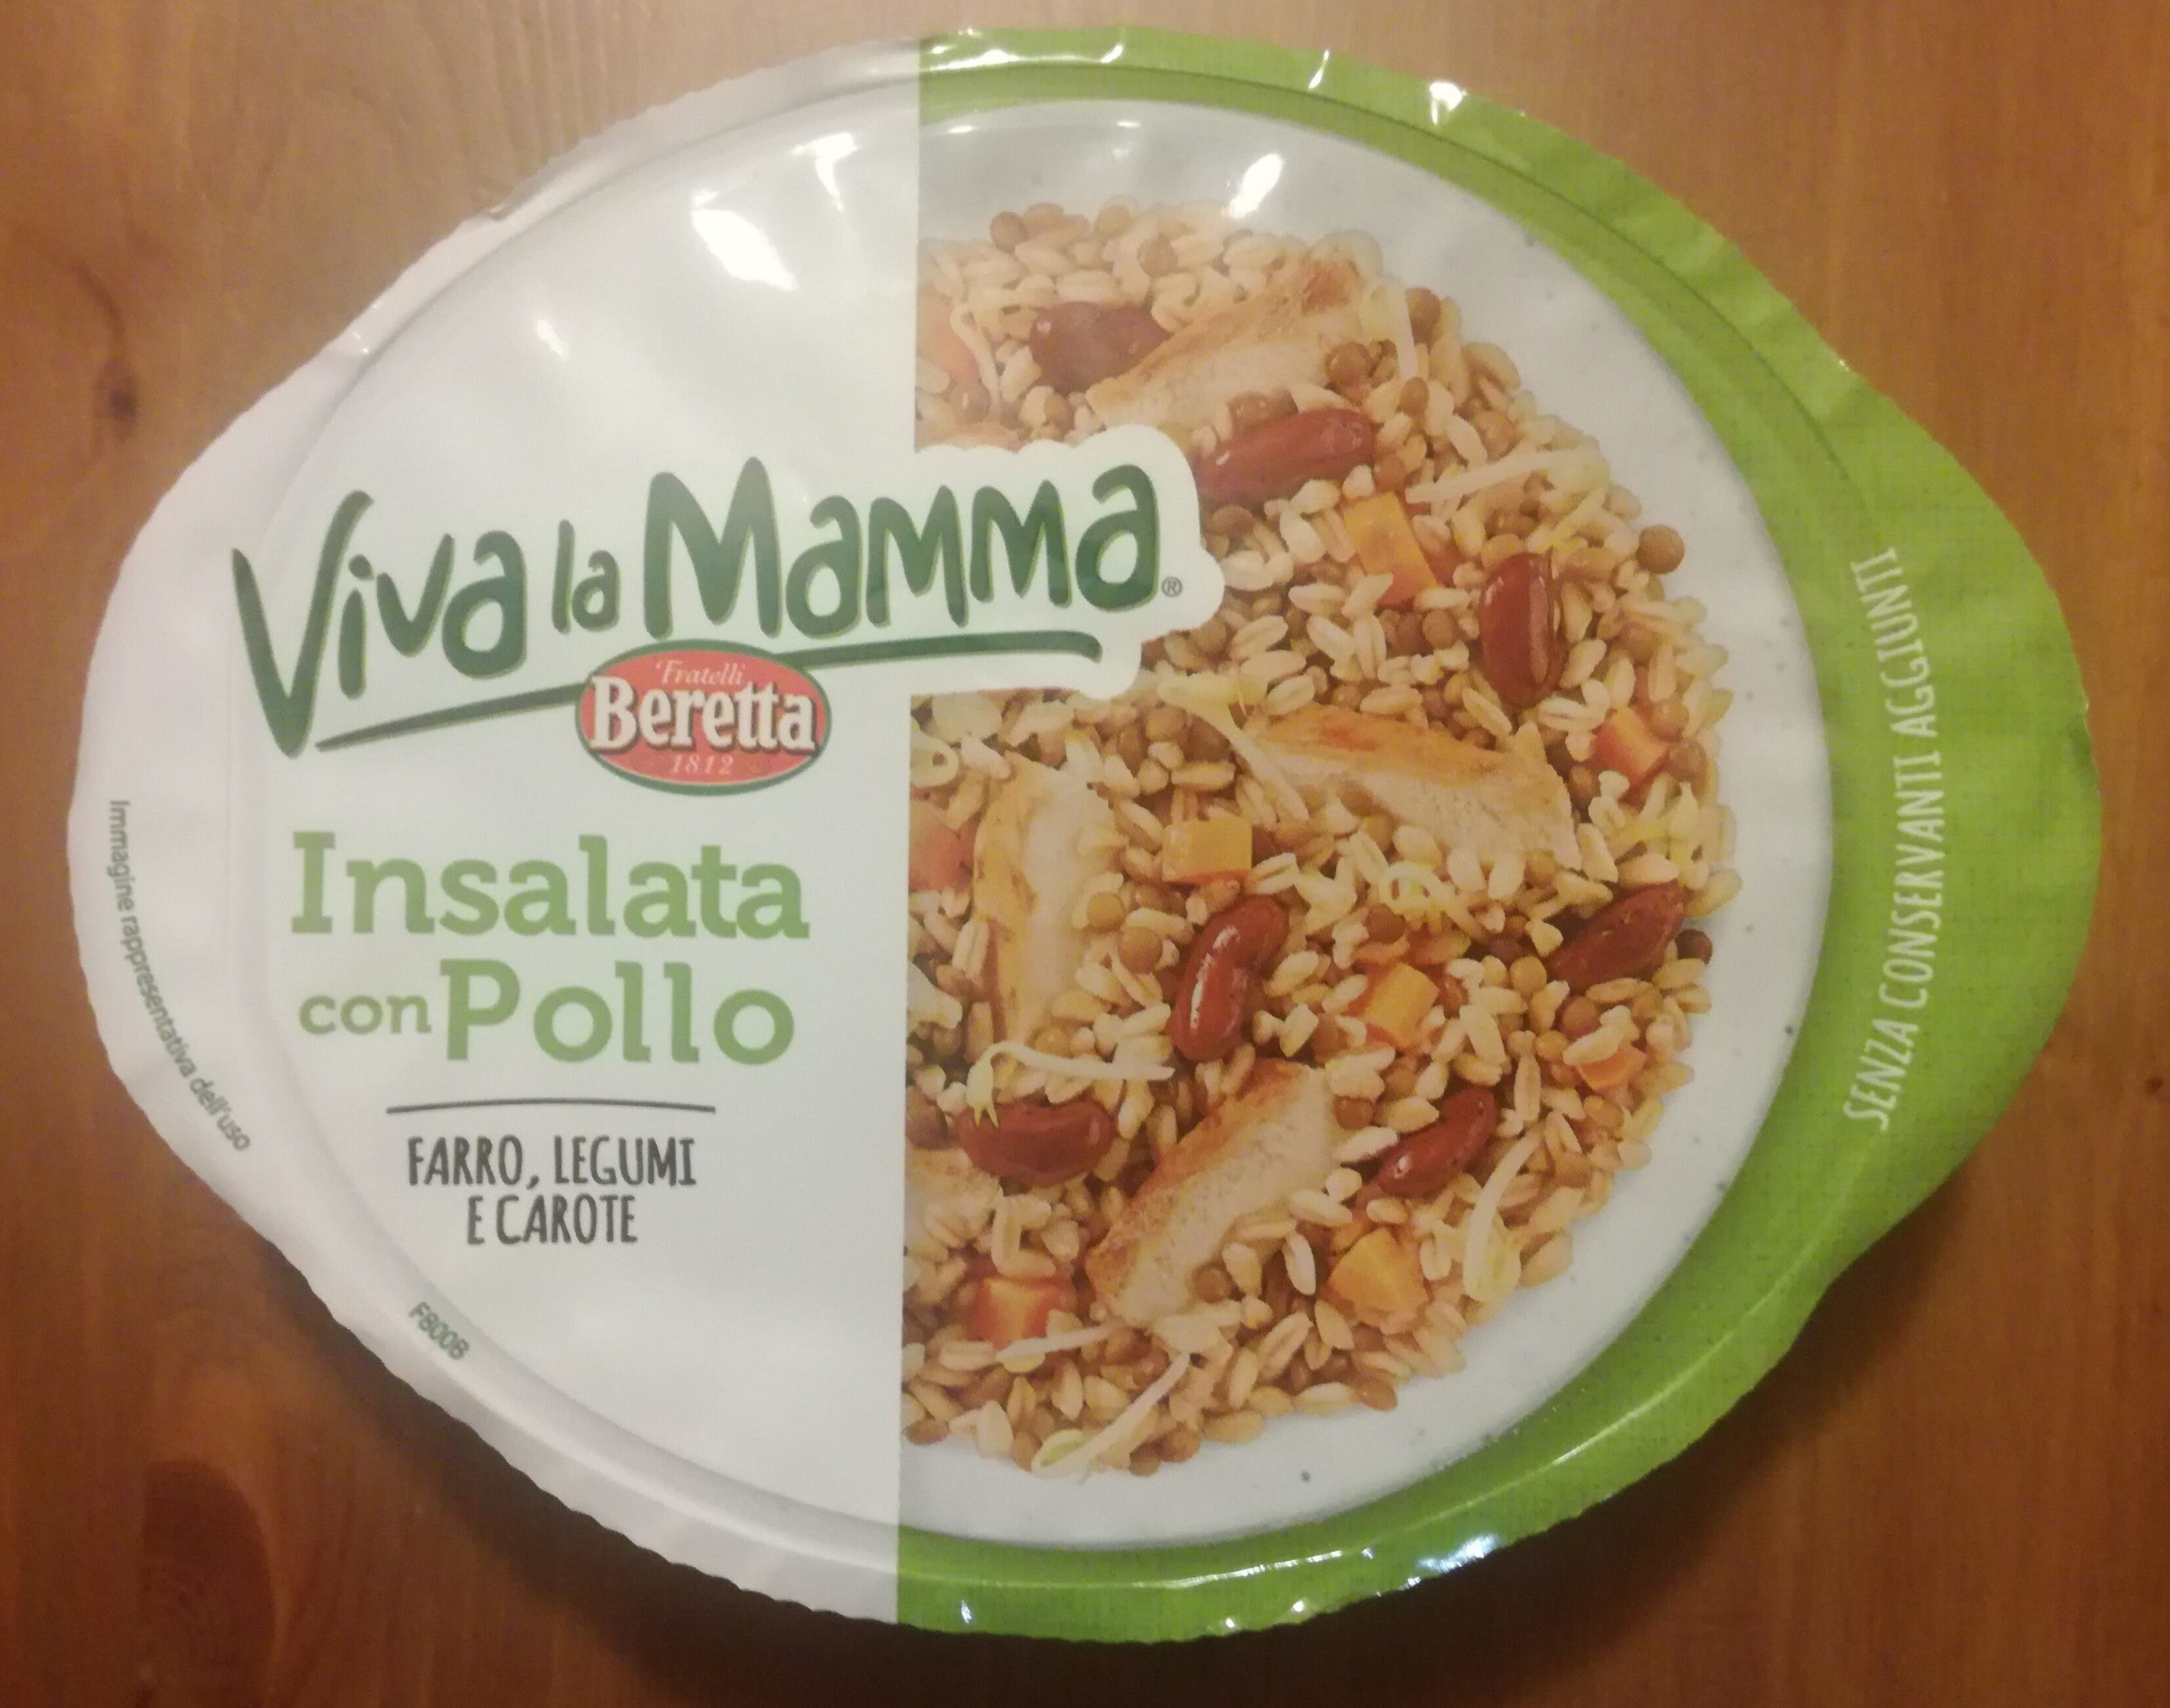 Viva la Mamma - Insalata con Pollo - Produkt - it